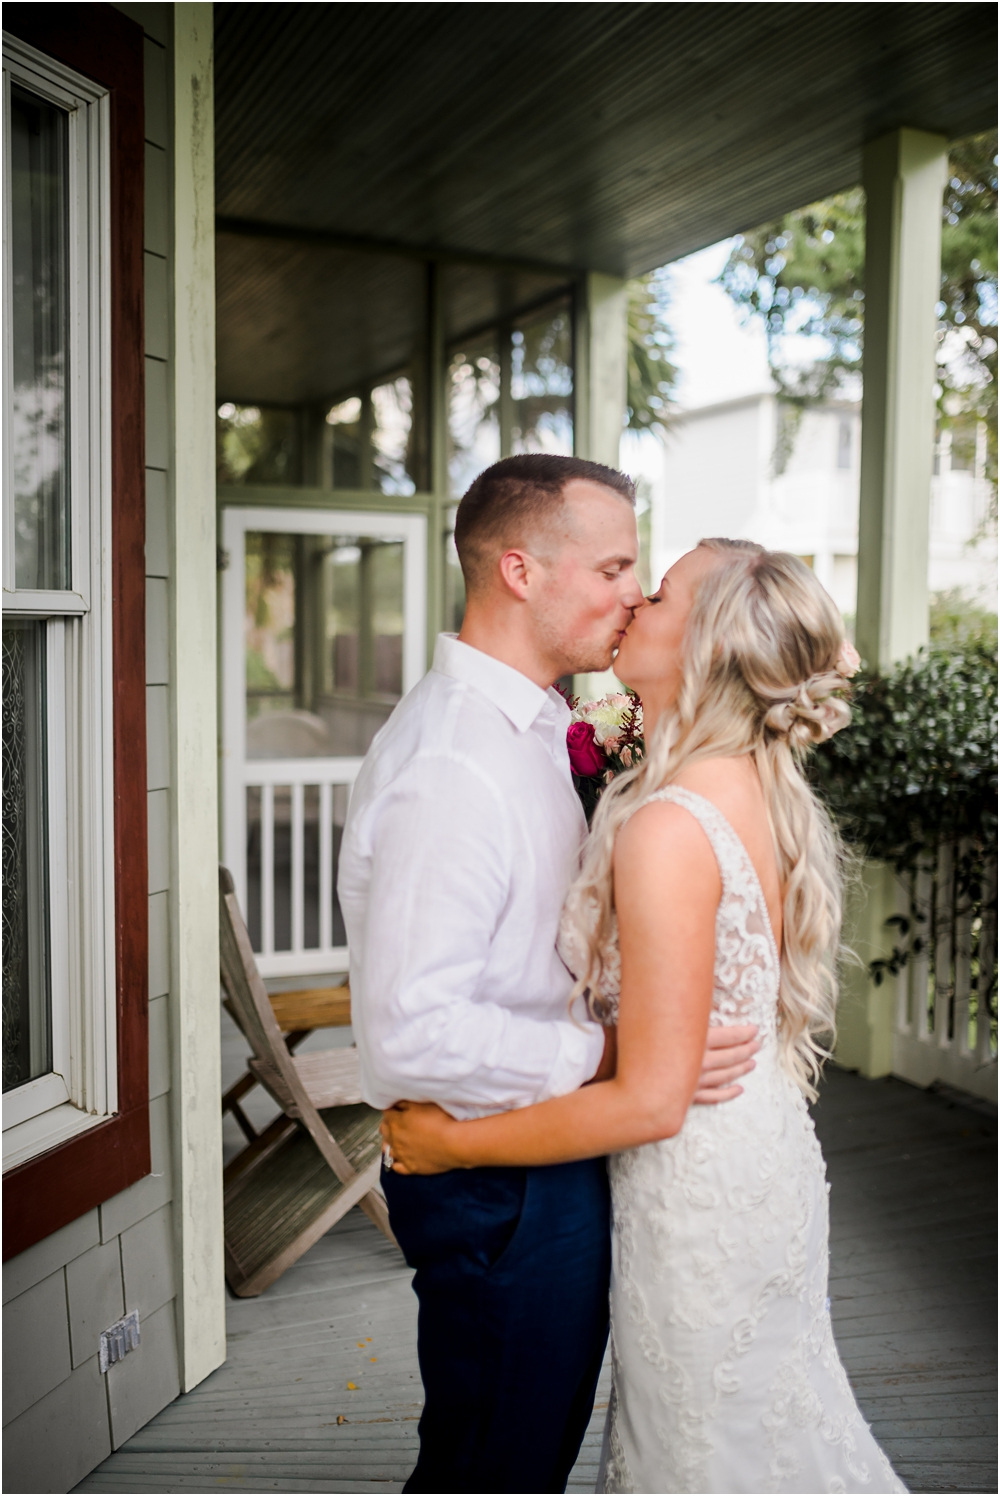 mcglothlin-wedding-kiersten-stevenson-photography-30a-panama-city-beach-dothan-tallahassee-(50-of-145).jpg